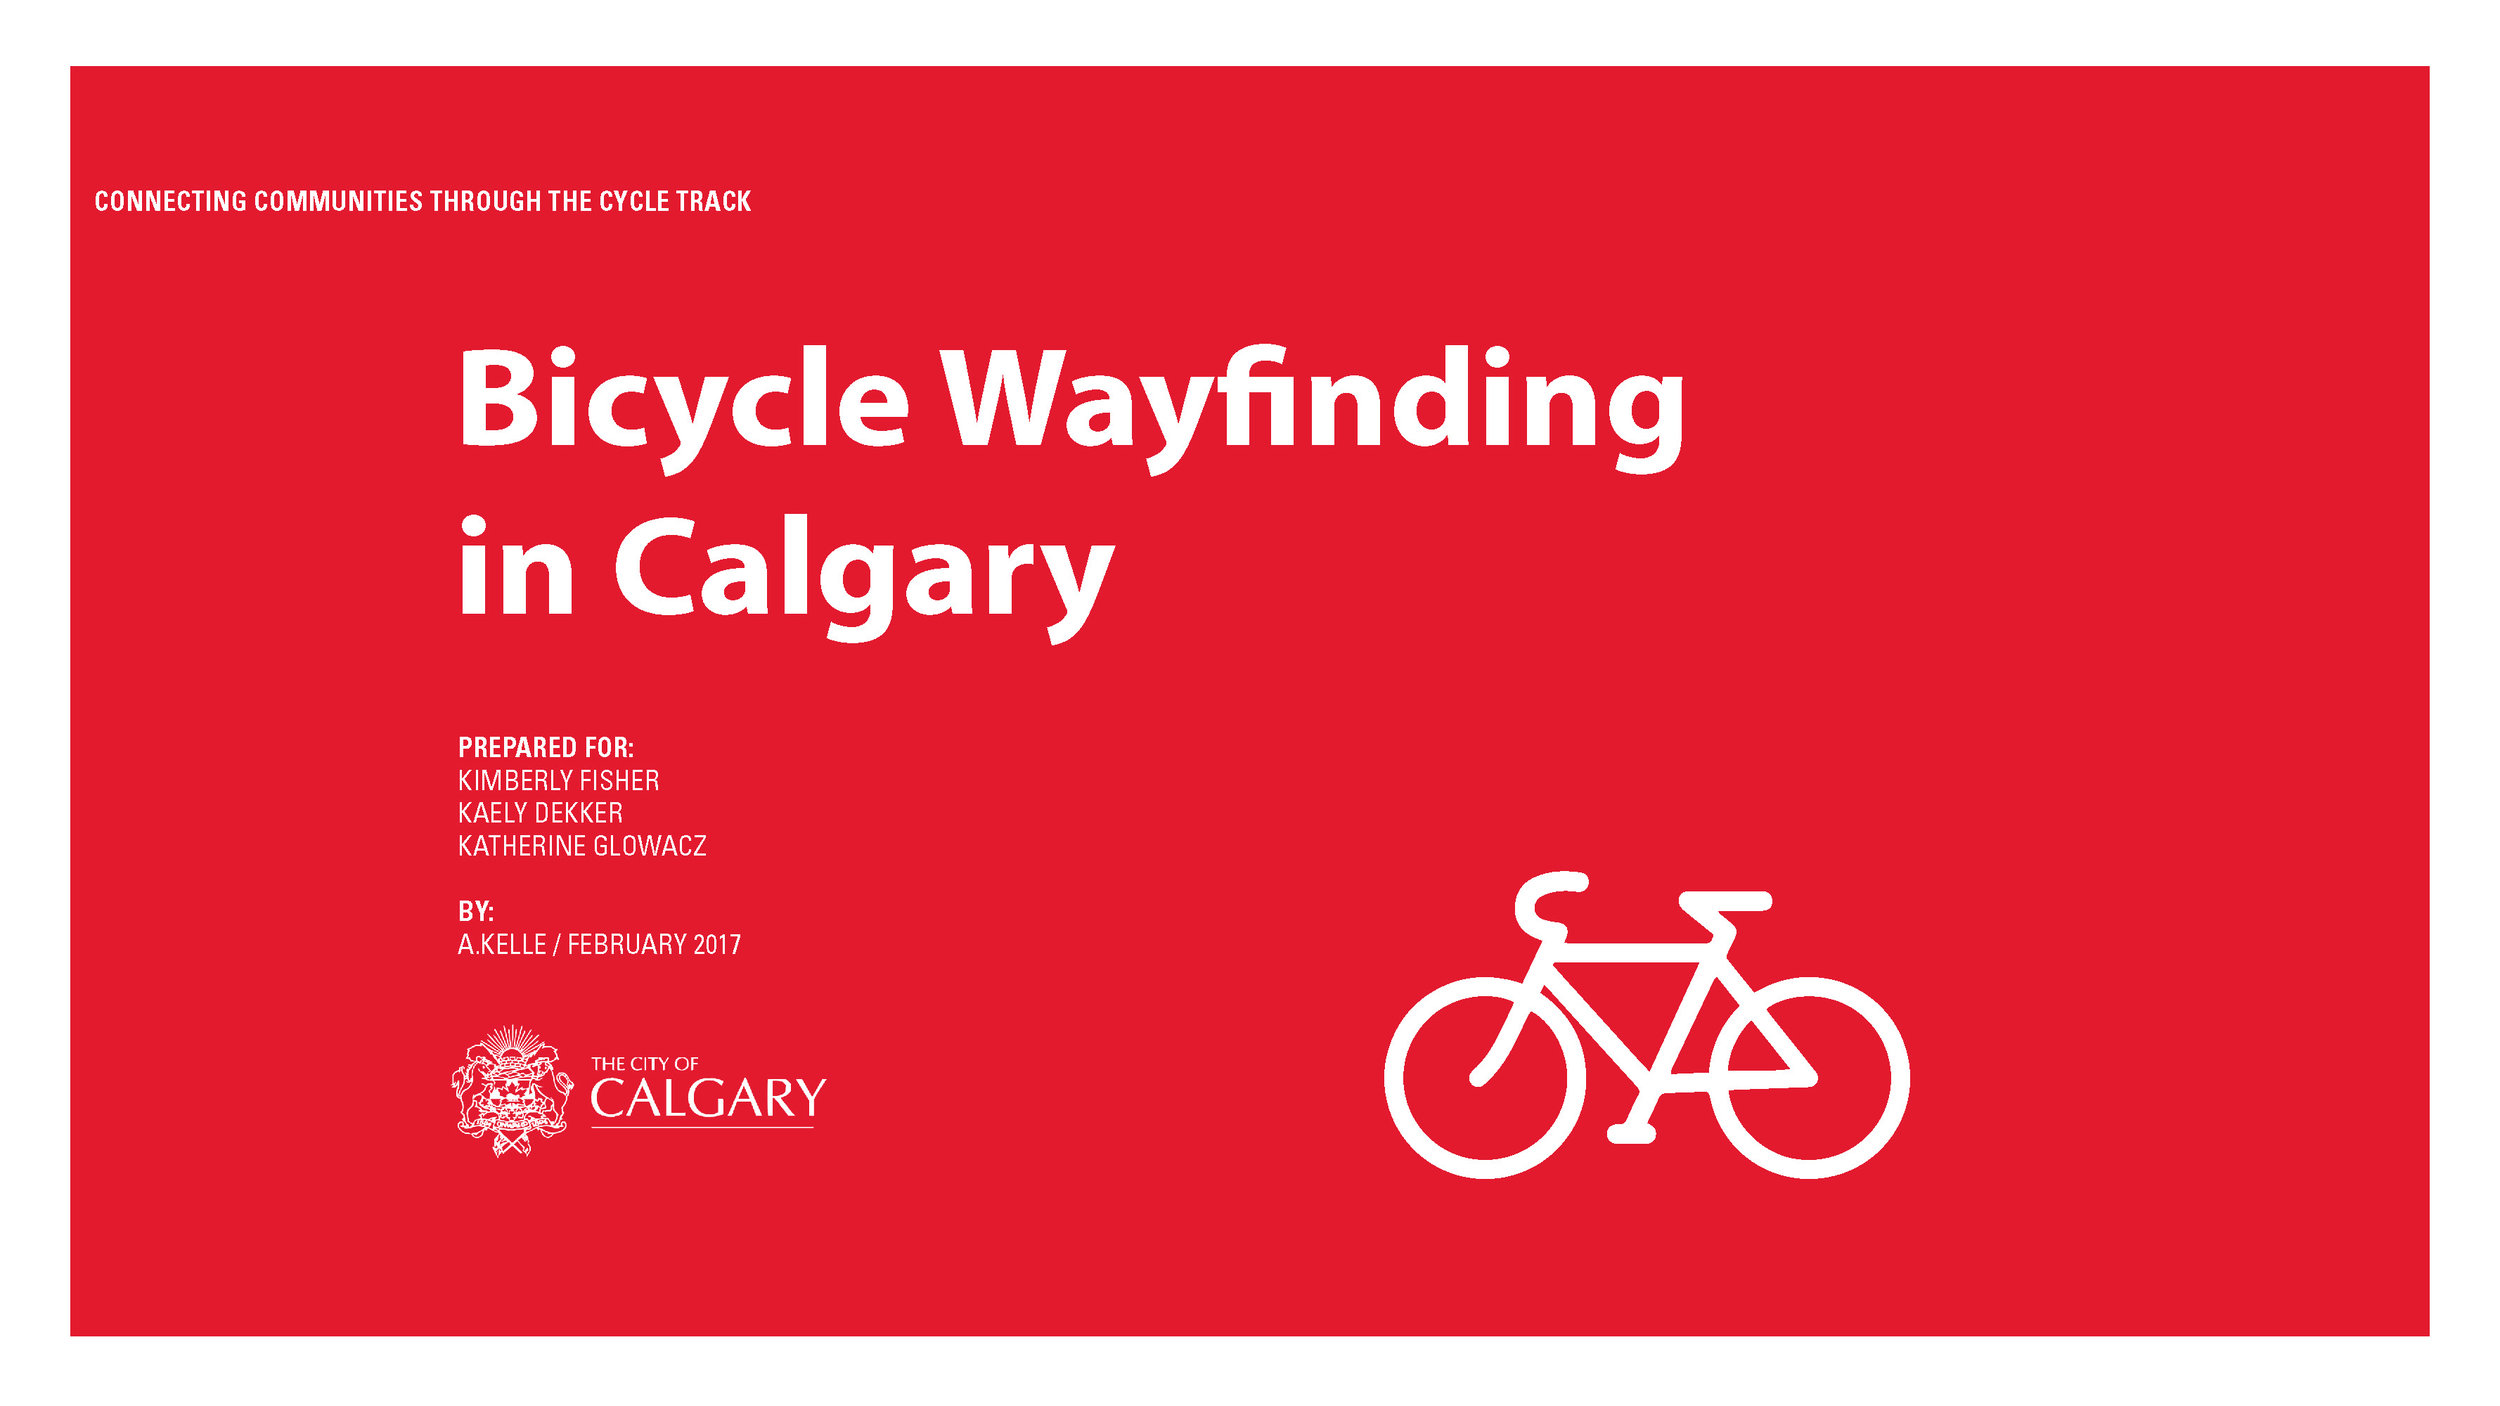 Bicycle Wayfinding in Calgary, presented to The City of Calgary, 2017.